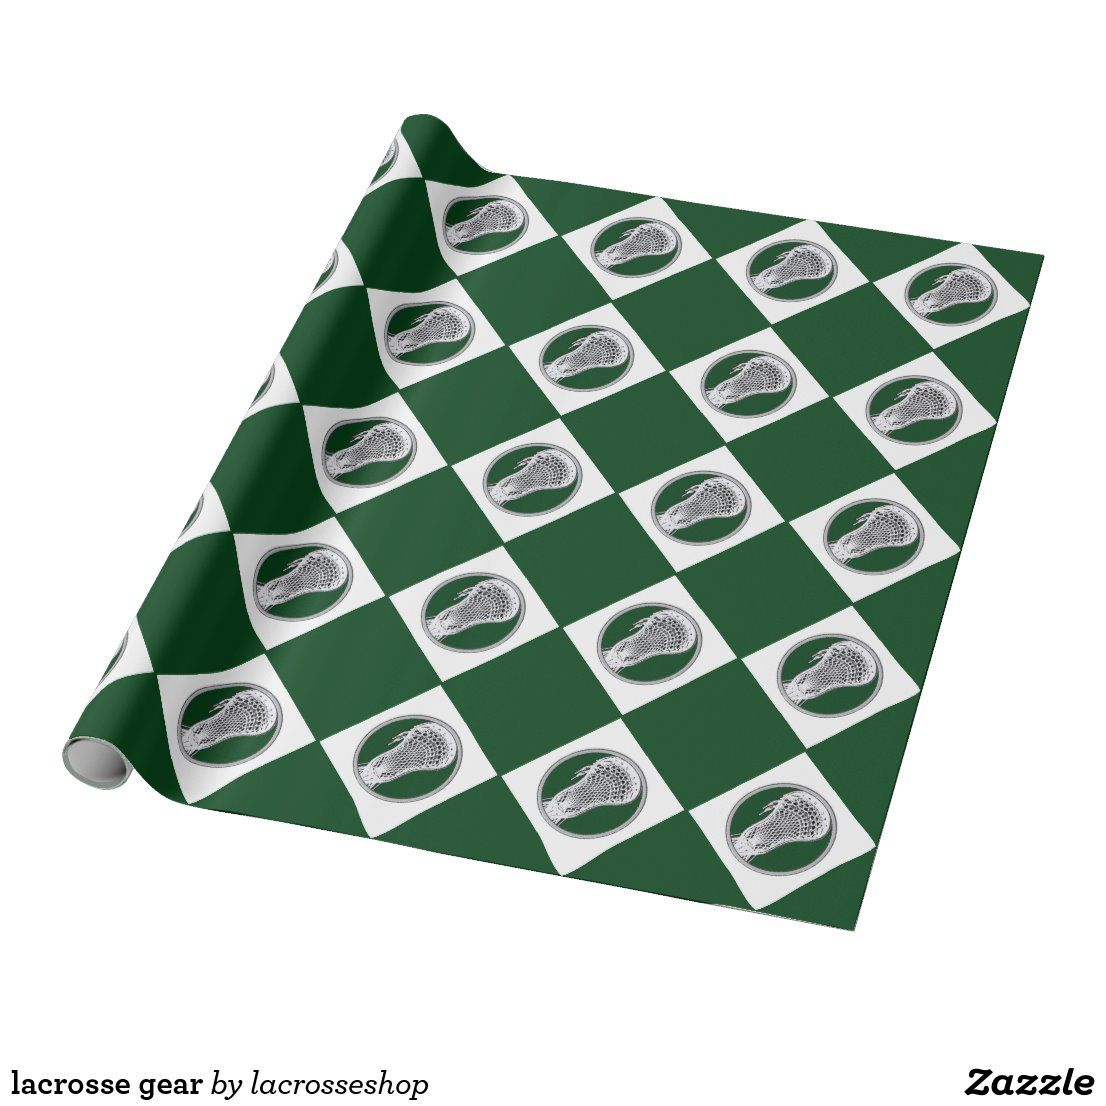 Lacrosse Gear Wrapping Paper Zazzle Com In 2020 Lacrosse Gear Lacrosse Wrapping Paper